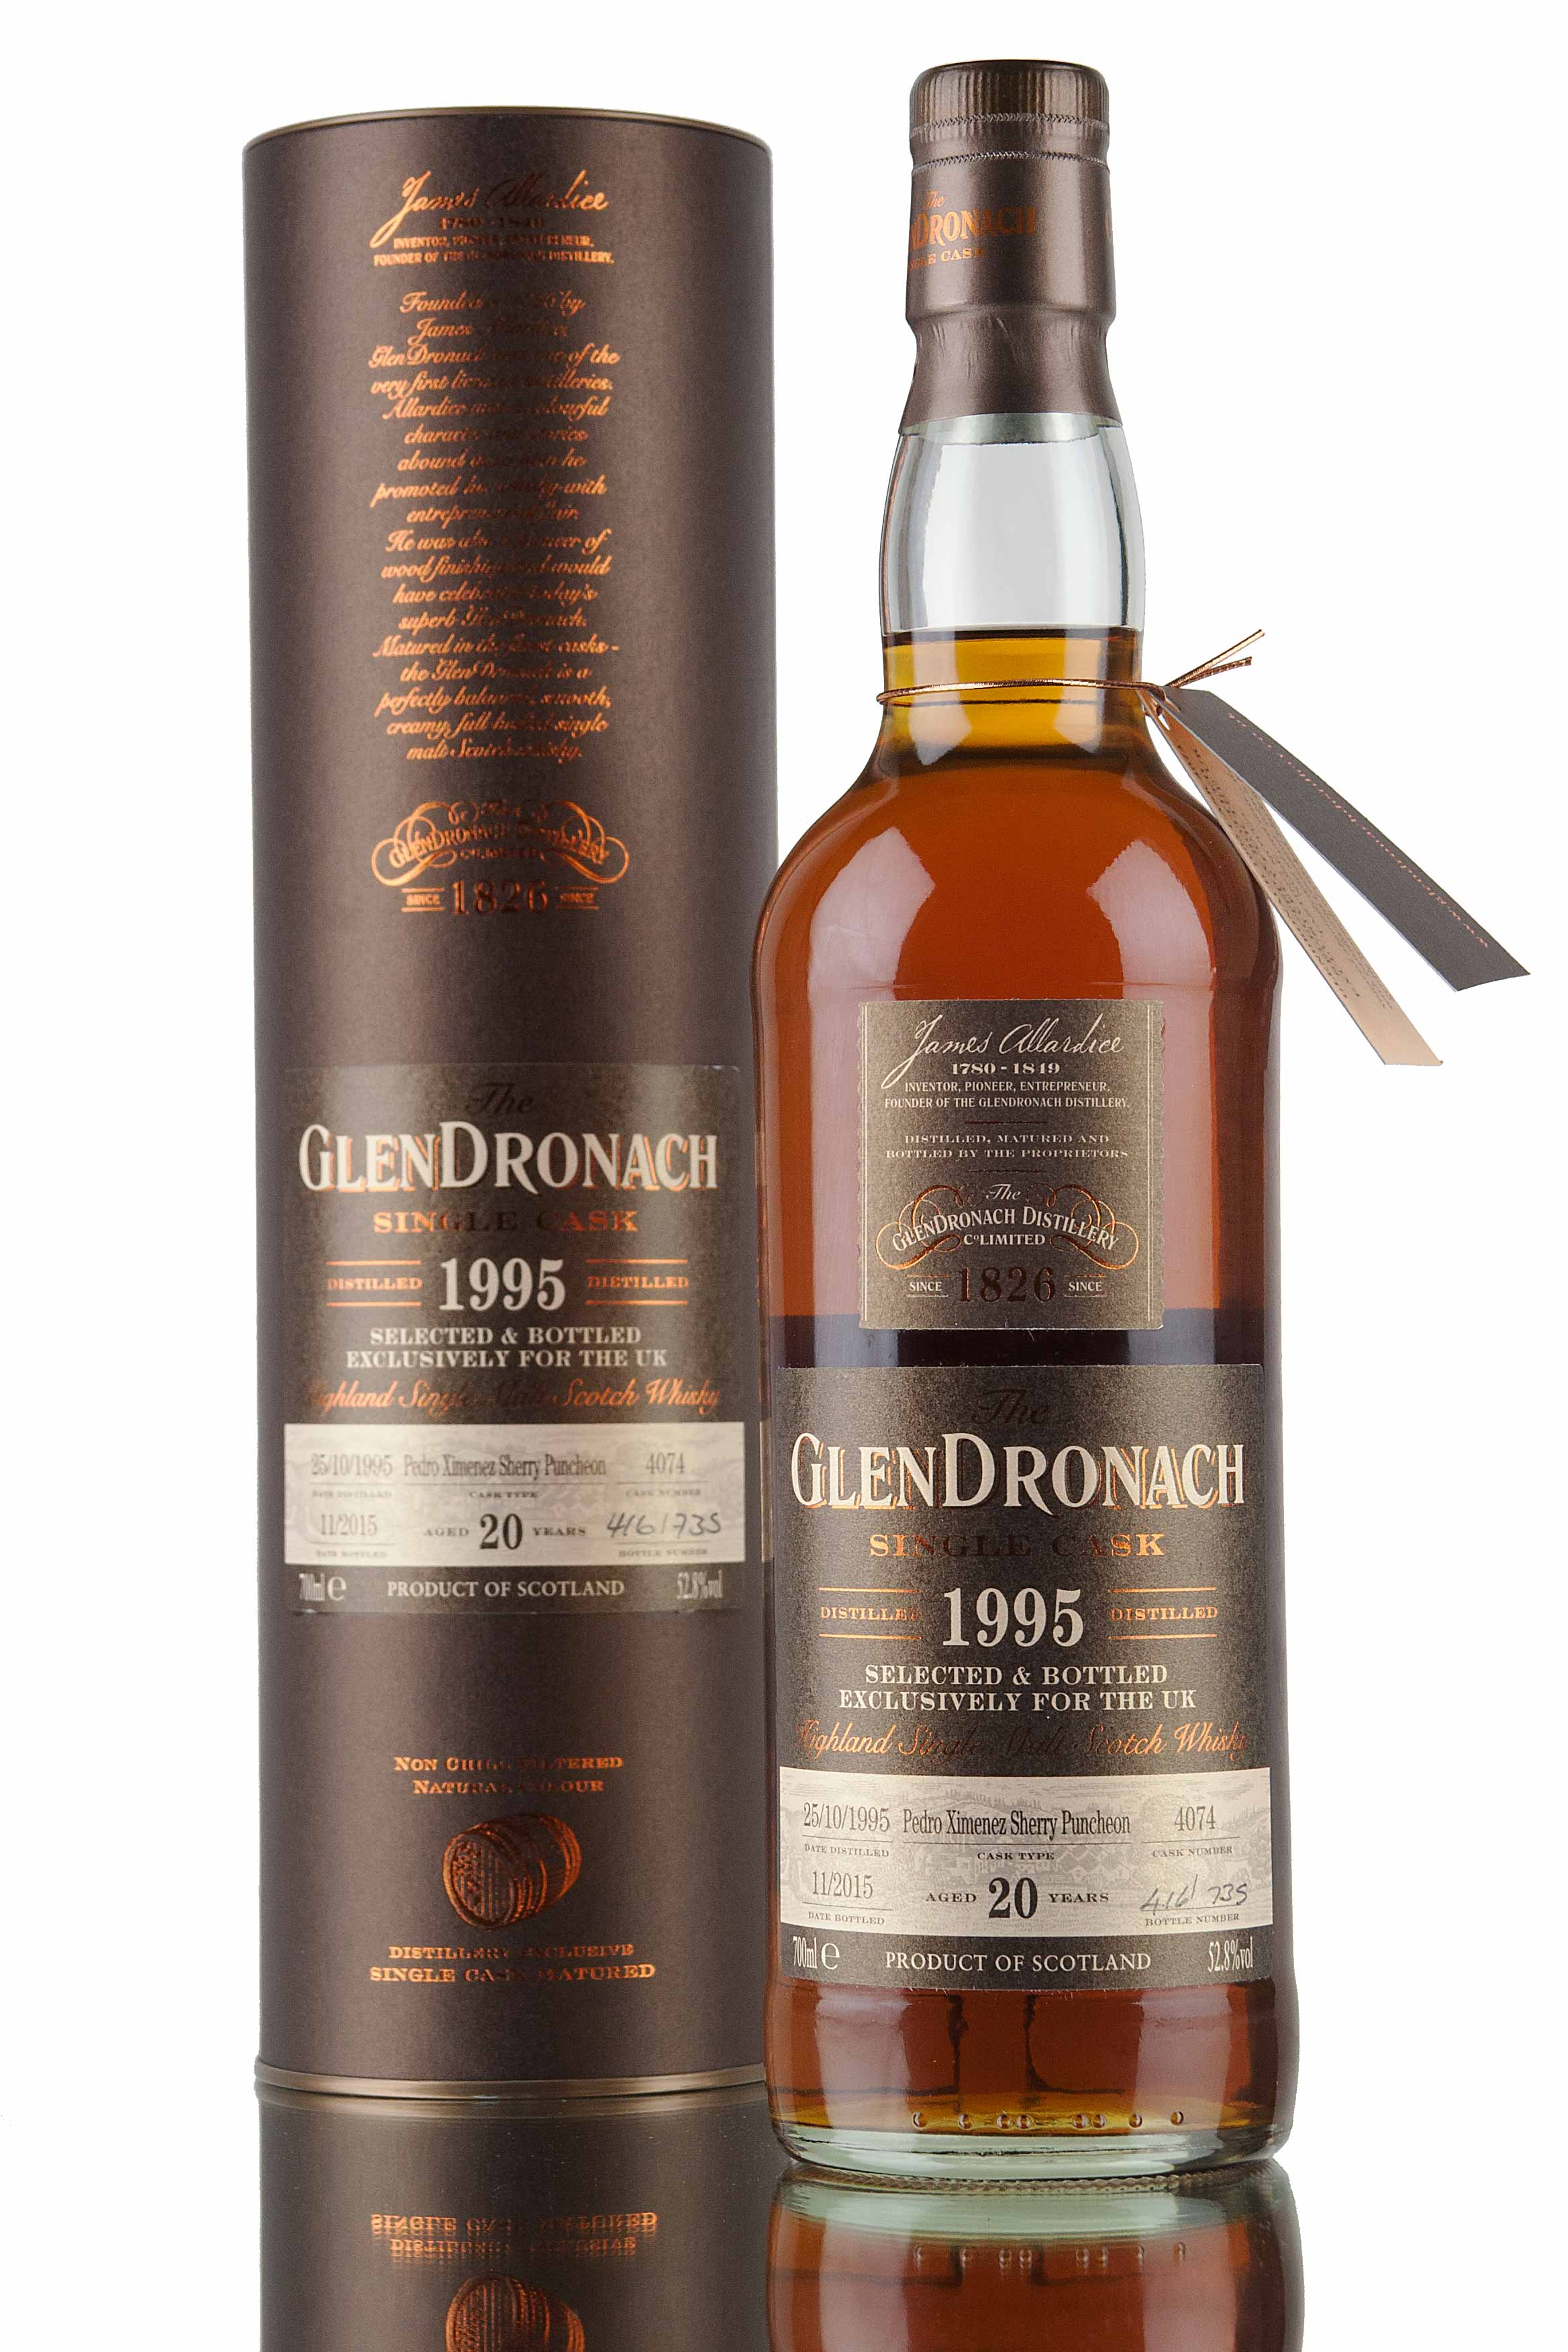 GlenDronach 20 Year Old - 1995 / Cask 4074 / UK Exclusive